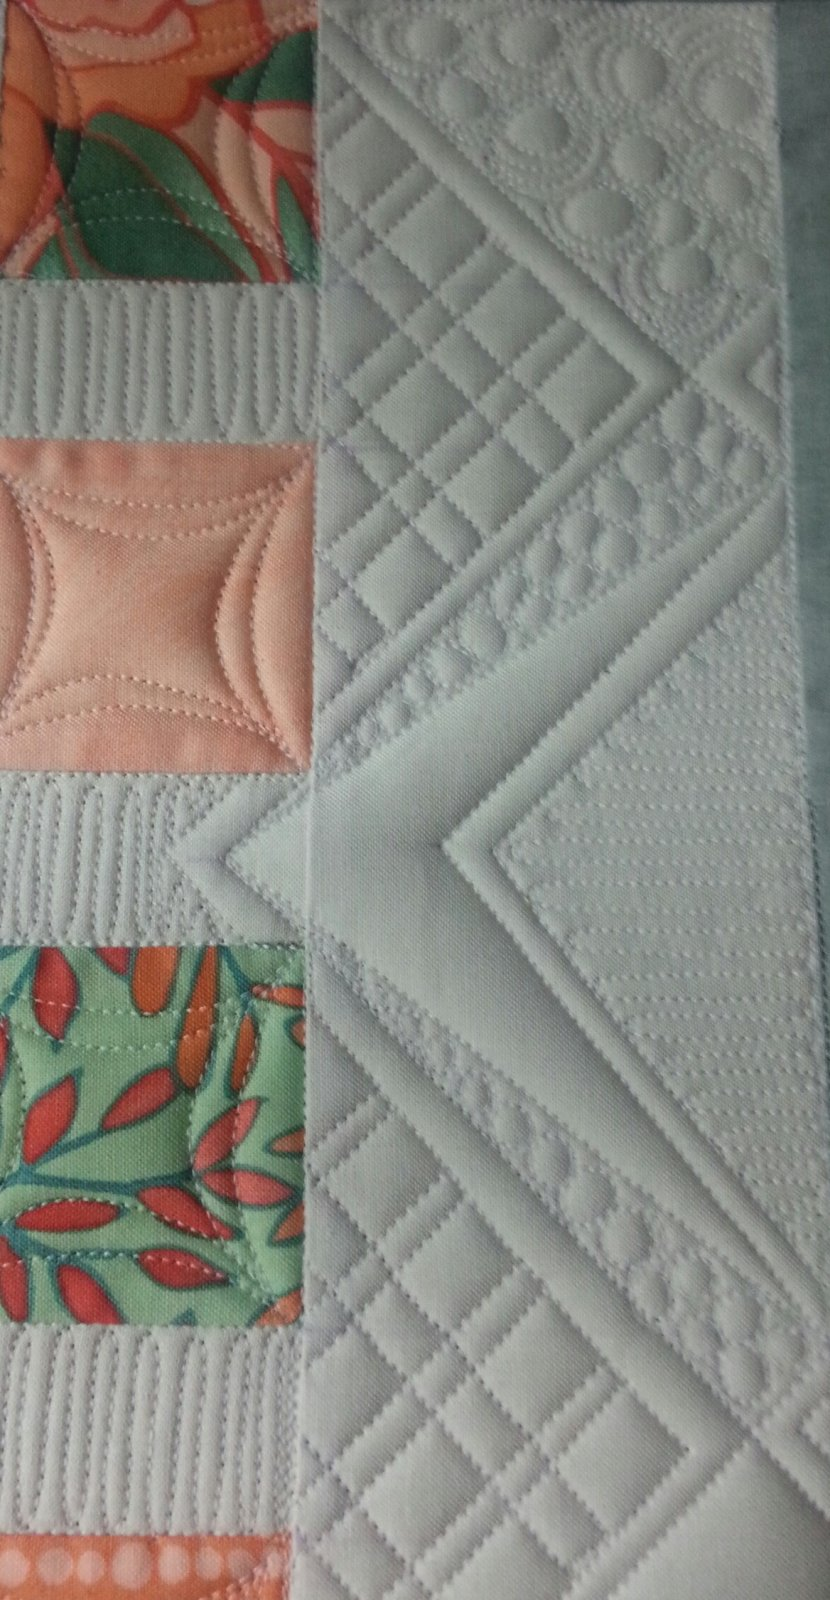 Quilts Rule! - Free Motion Quilting Class with Jane Hauprich